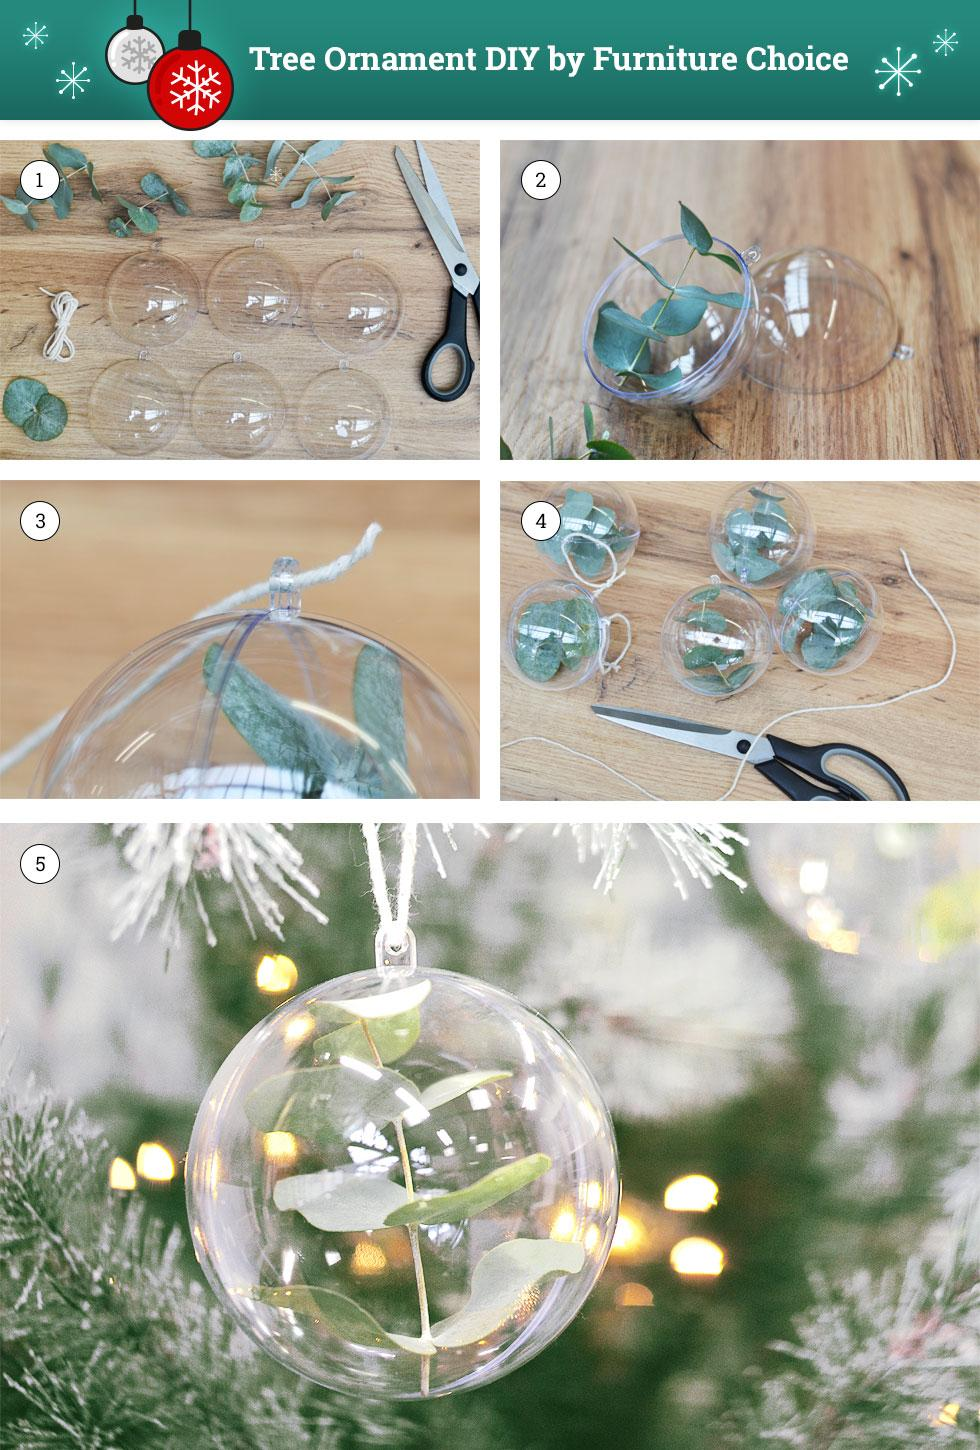 DIY steps to making a Christmas tree ornament.